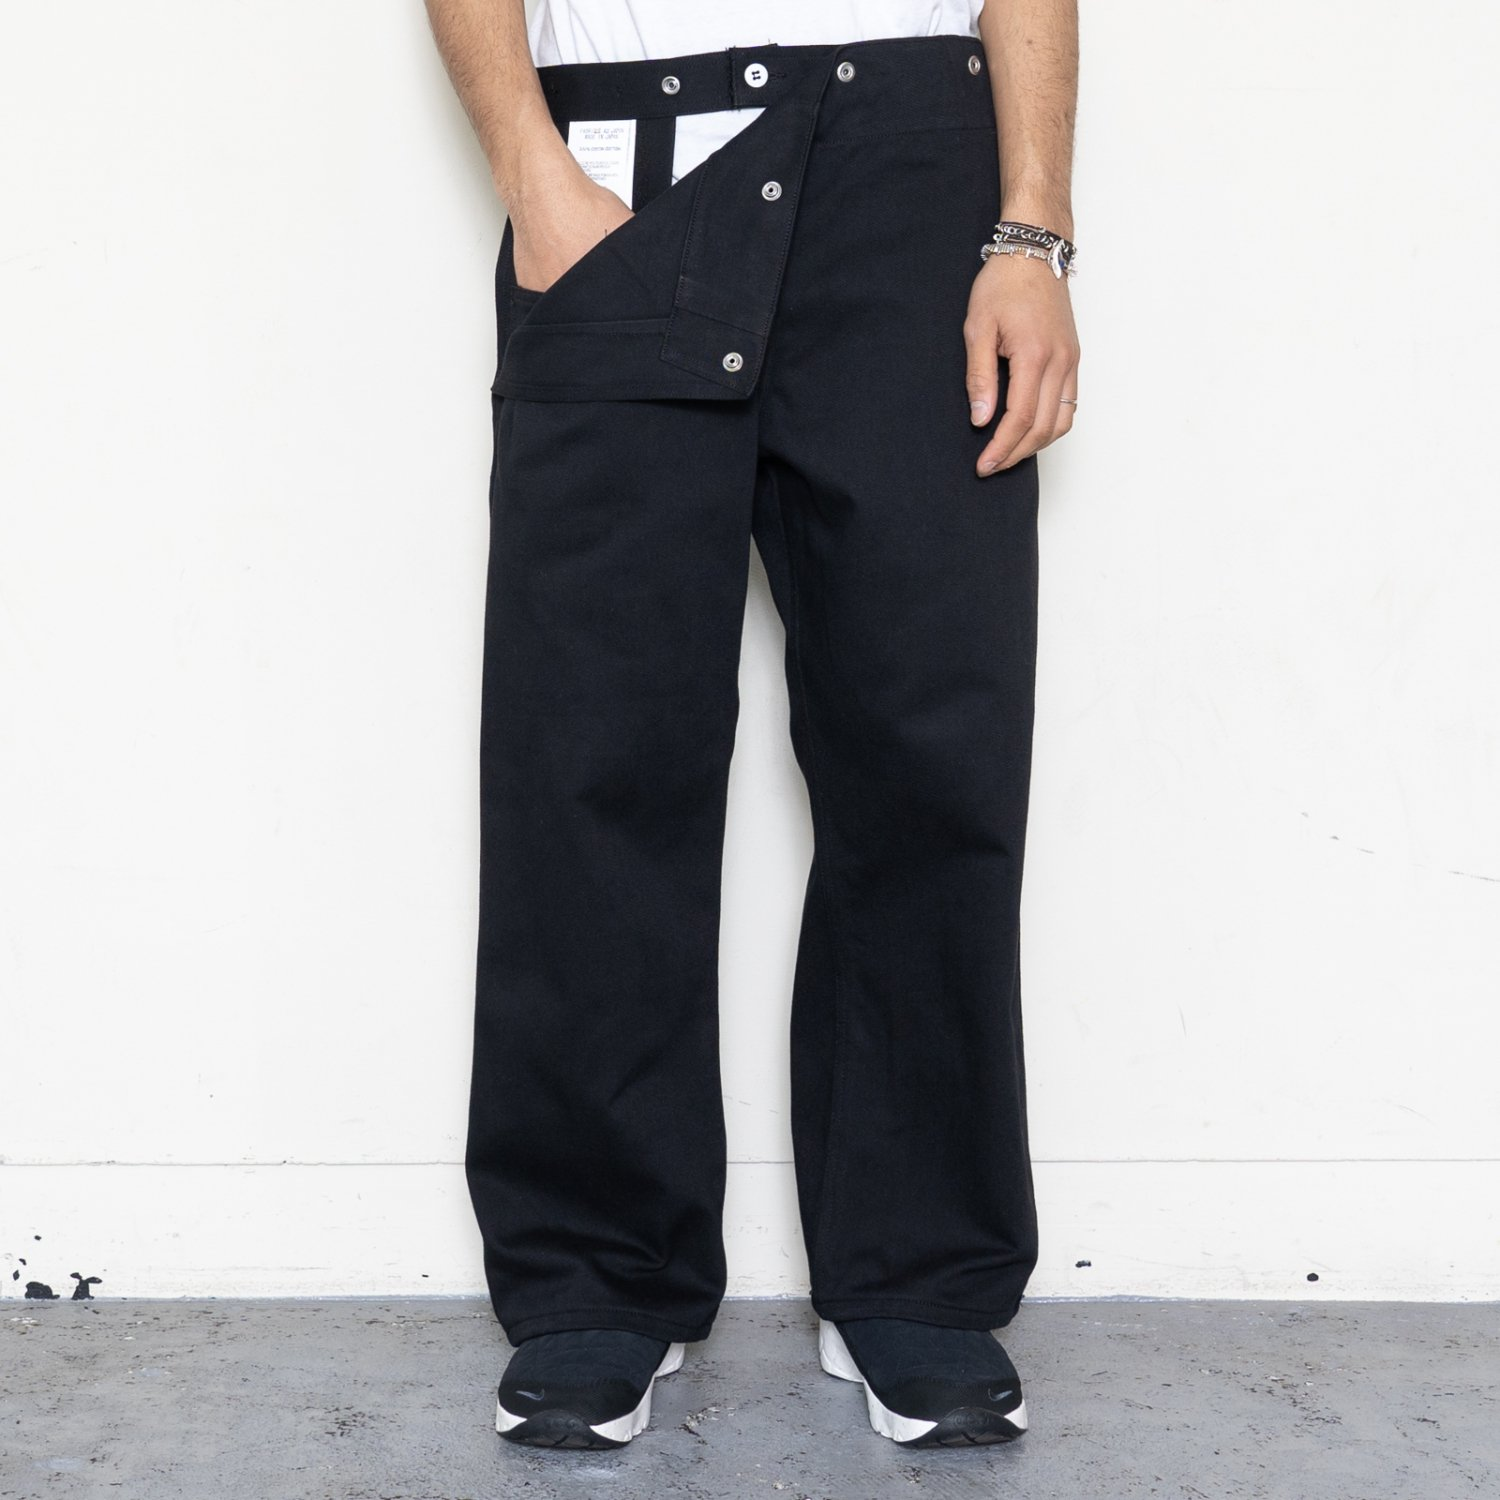 TUKI * 0146 Snap Pants * Black